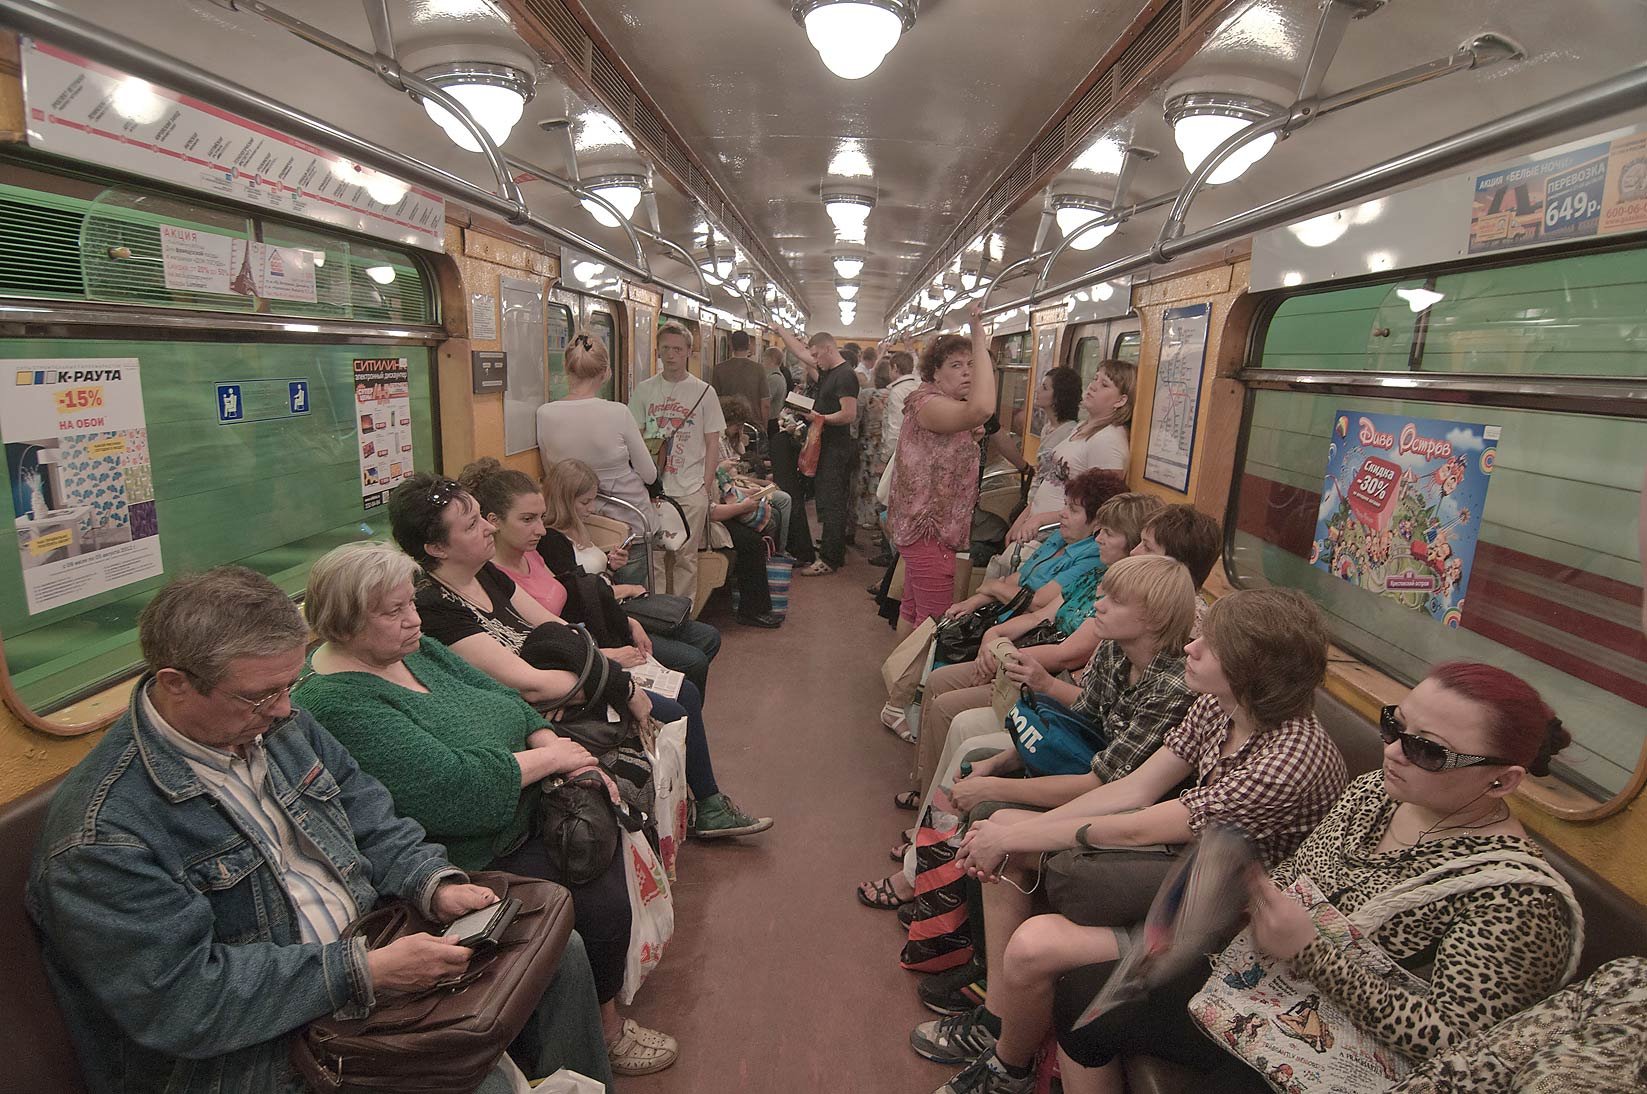 Passengers sitting in Metro (subway) train. St.Petersburg, Russia